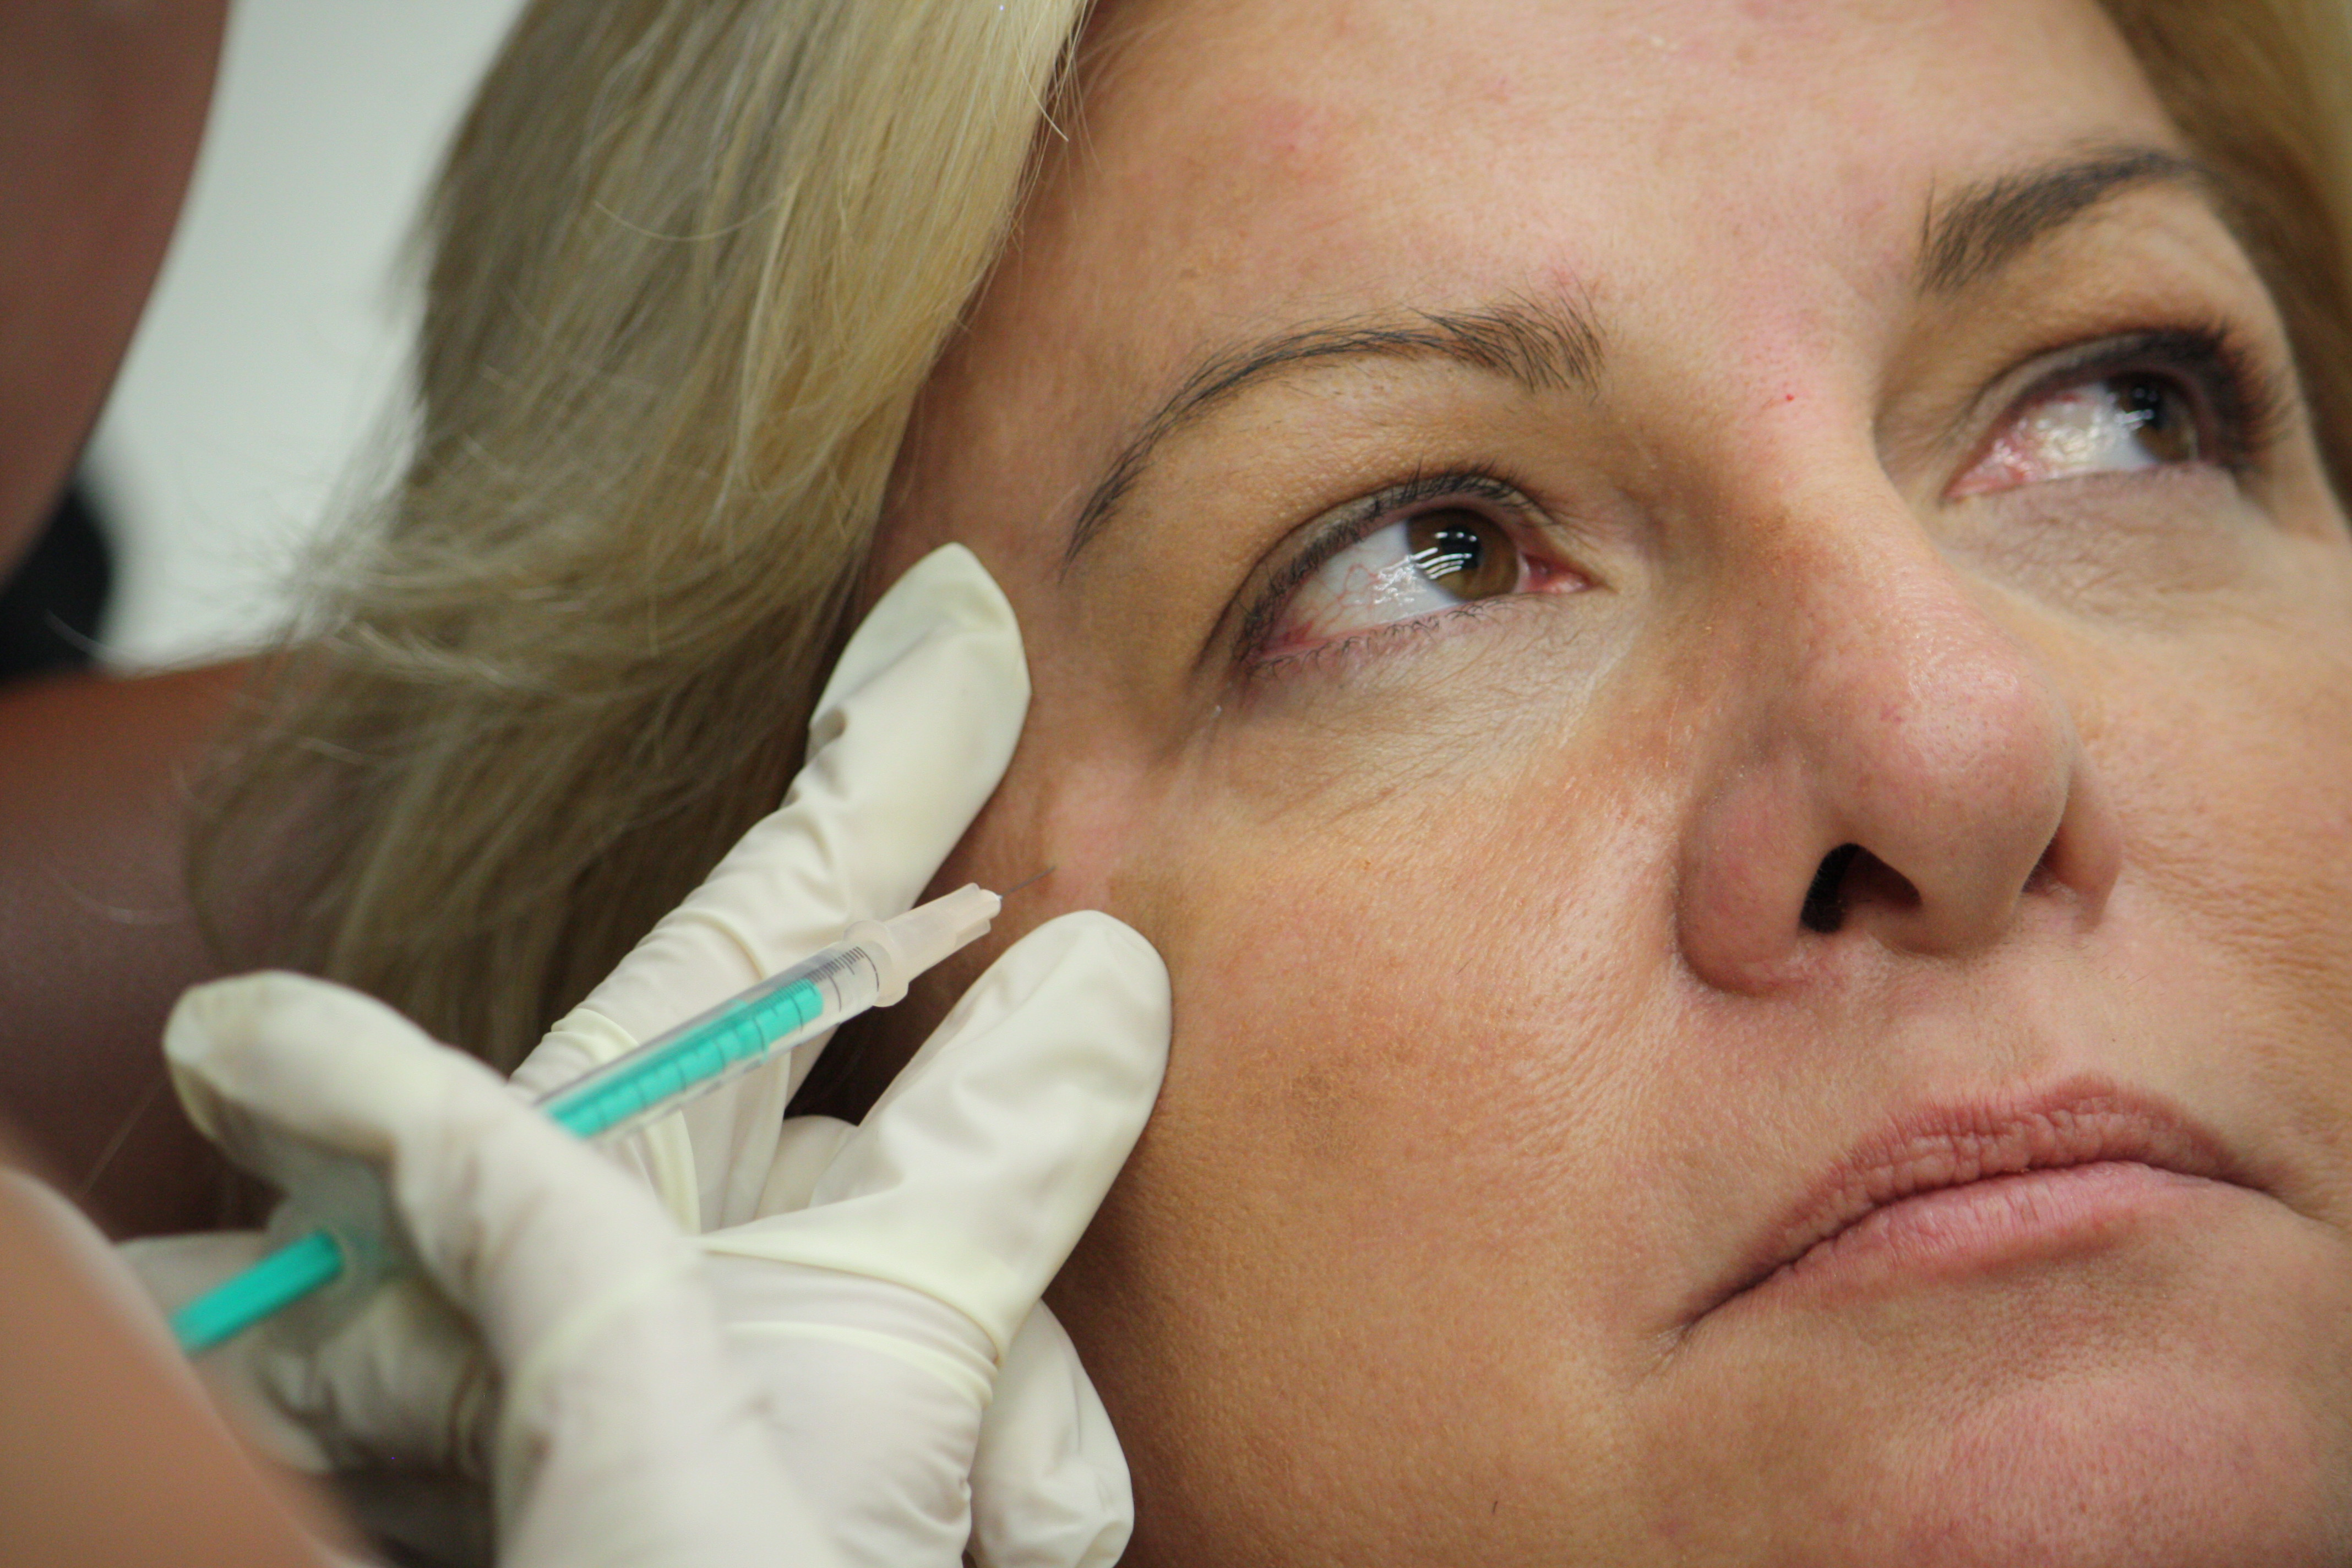 Botox kits botox certification national laser institute botox training solutioingenieria Image collections